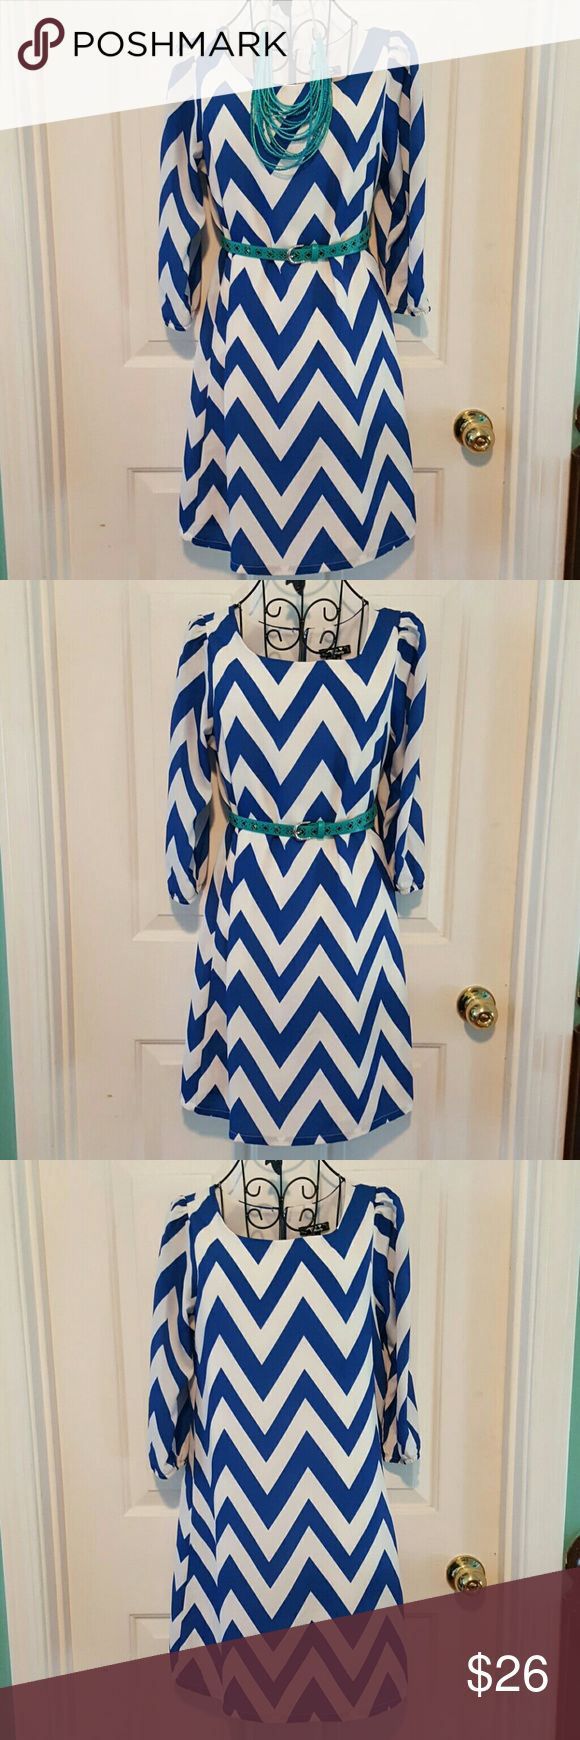 Blue and white chevron tunic/dress So pretty and versatile- plays well with accessories!  Great for the wedding guest or businesswoman. Fully lined. 3/4 length sleeves. Belt/necklace not included. Please note, this fits more like a 10-12. Sequin Hearts Dresses Midi